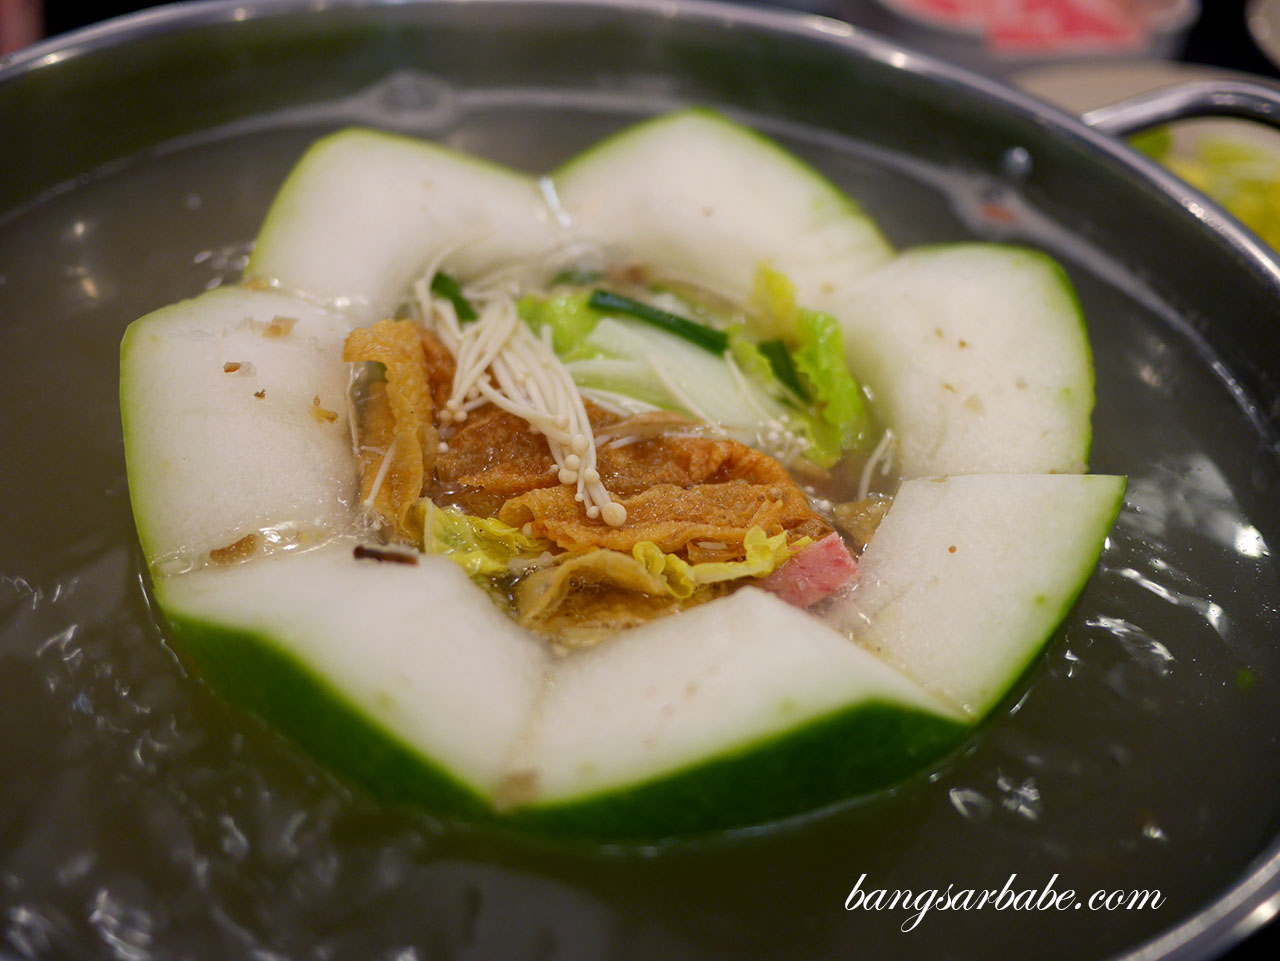 The broth is sweet from the wintermelon